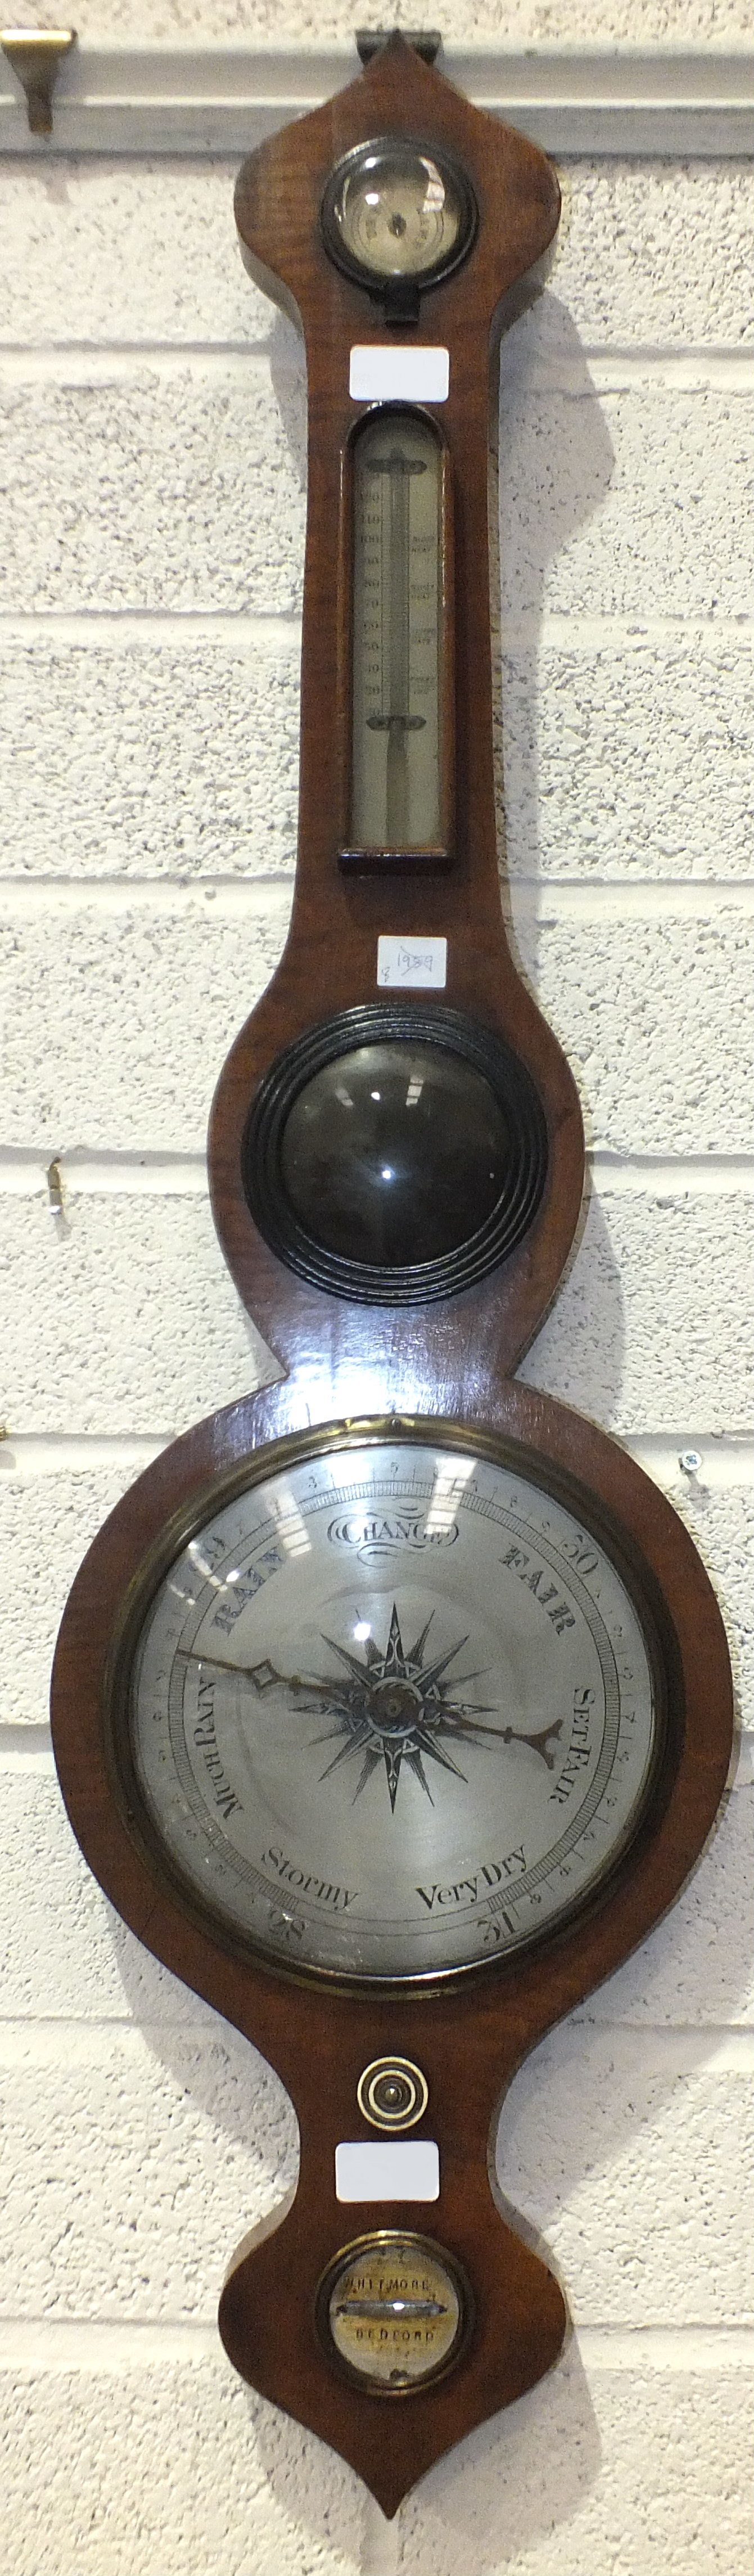 A mahogany wheel barometer with silvered dry/damp thermometer and barometer dials, the spirit